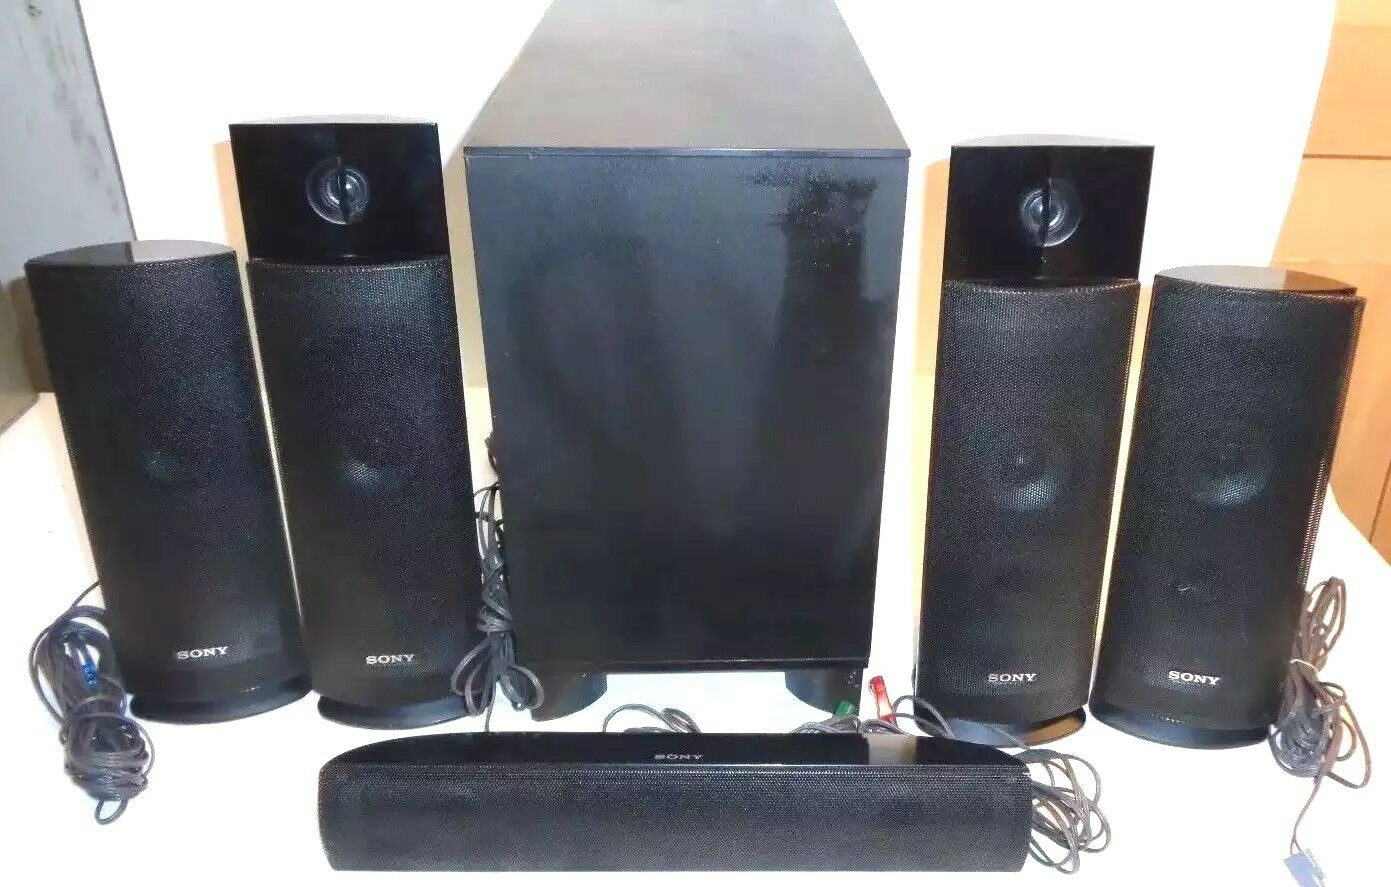 Sony BDV-N790W Home Theatre System Drivers for Windows